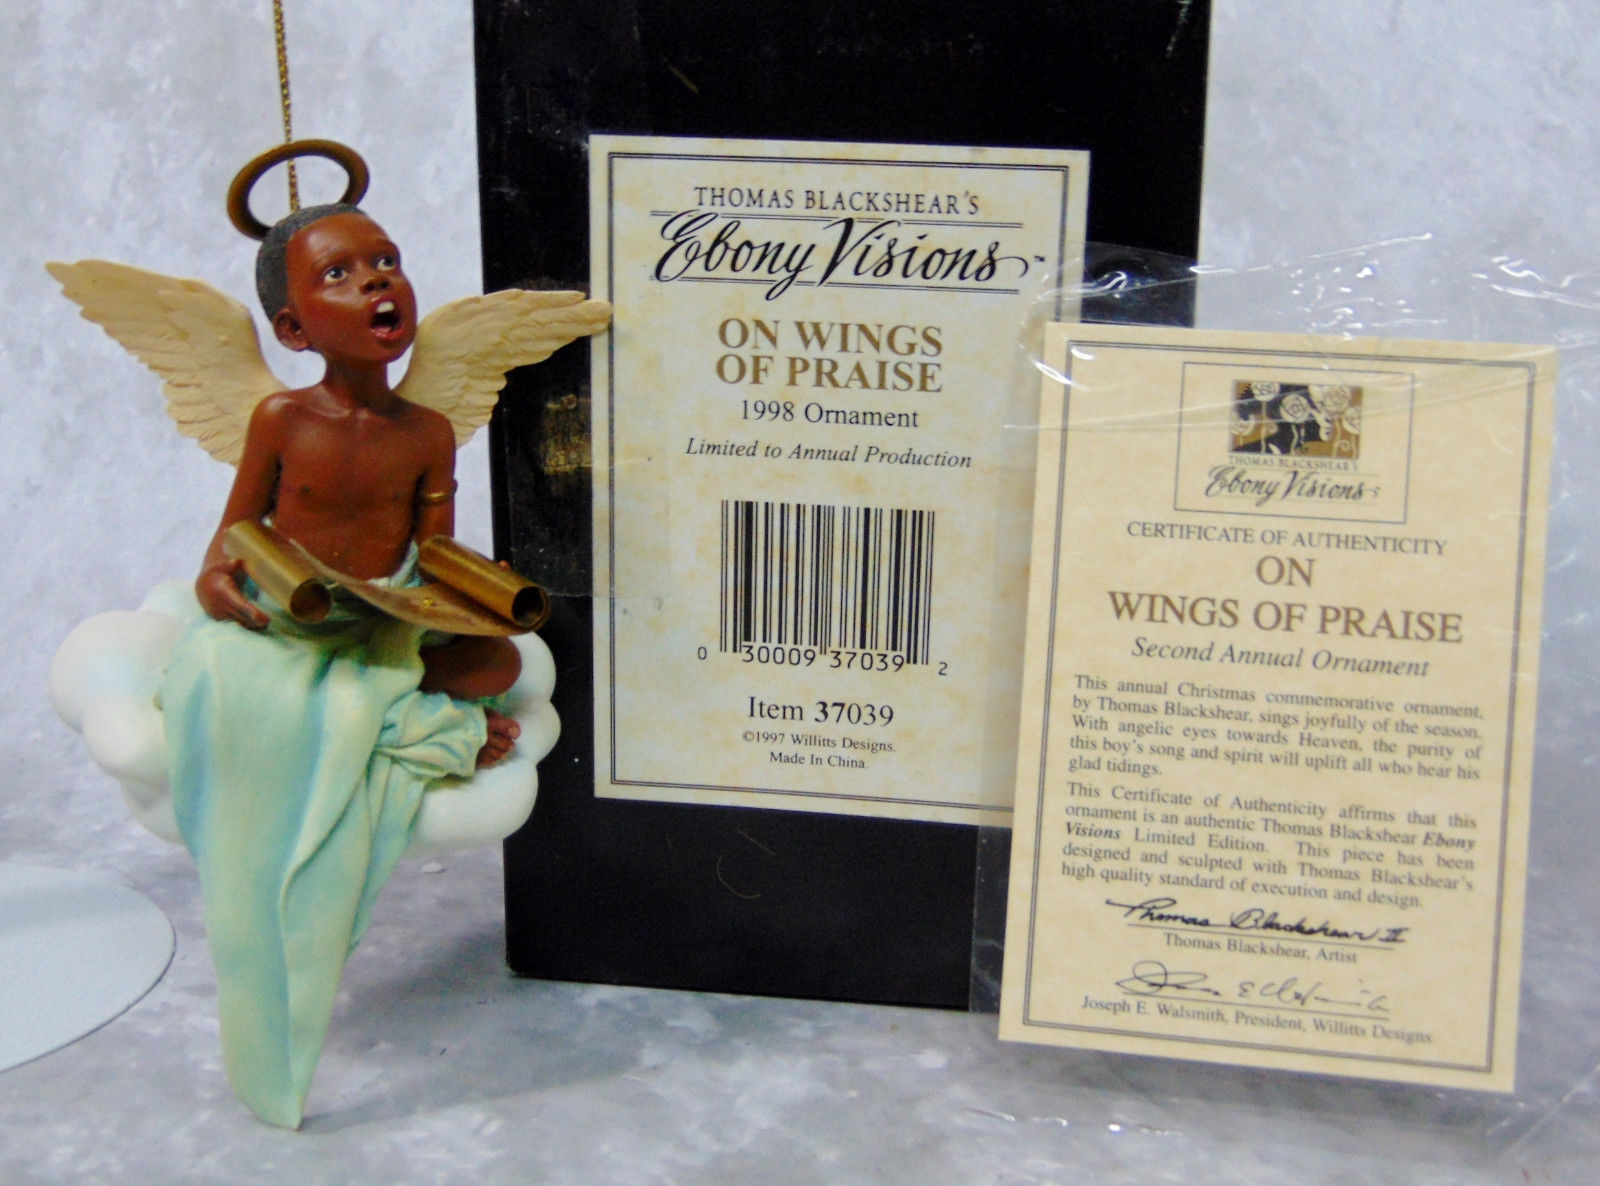 On Wings Of Praise Christmas ornament by Thomas Blackshear